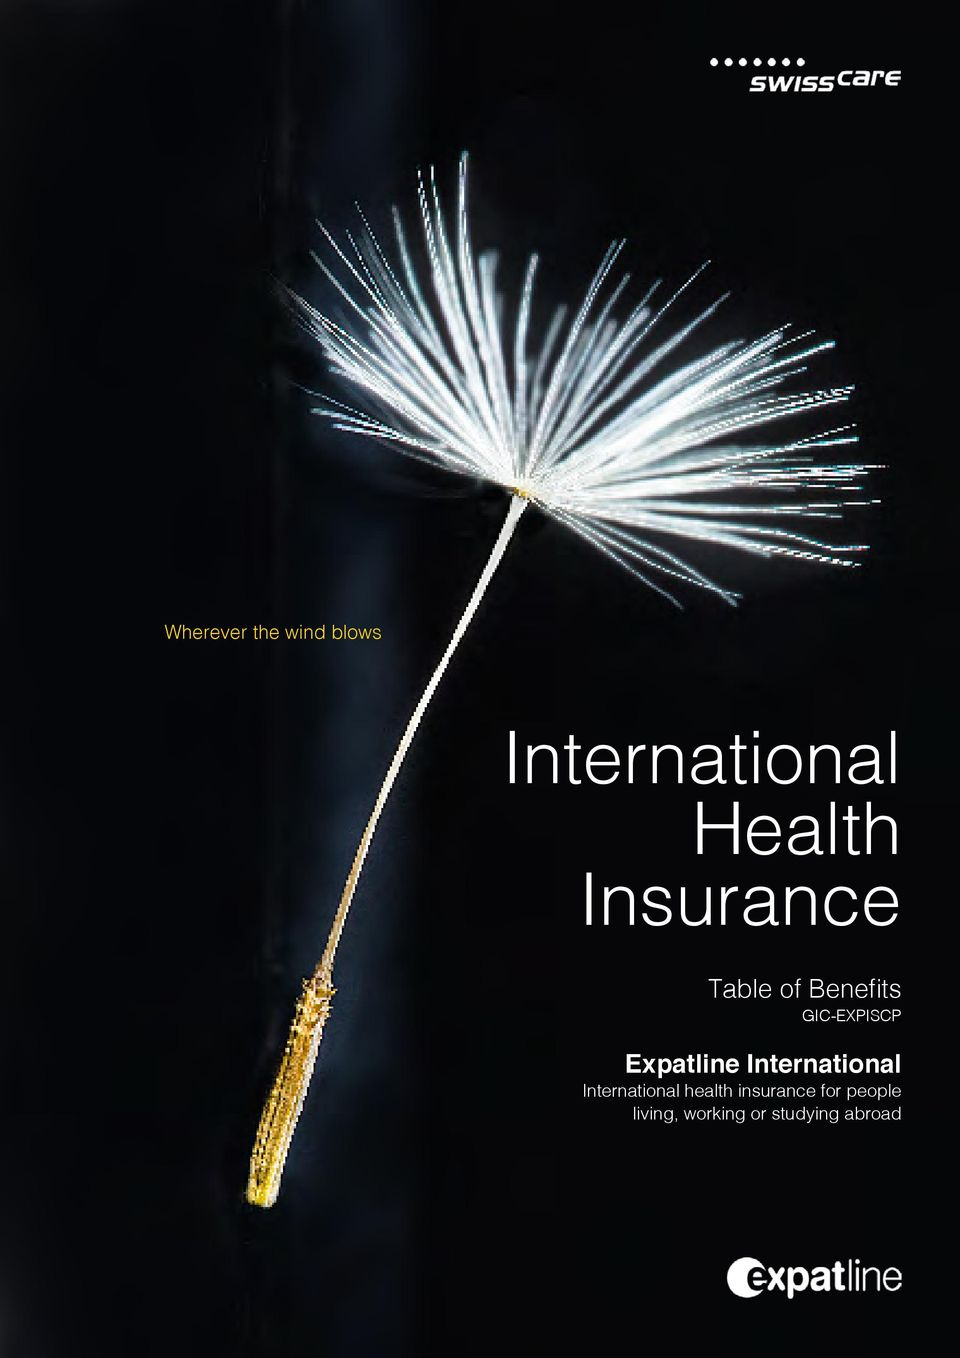 Expatline International International health